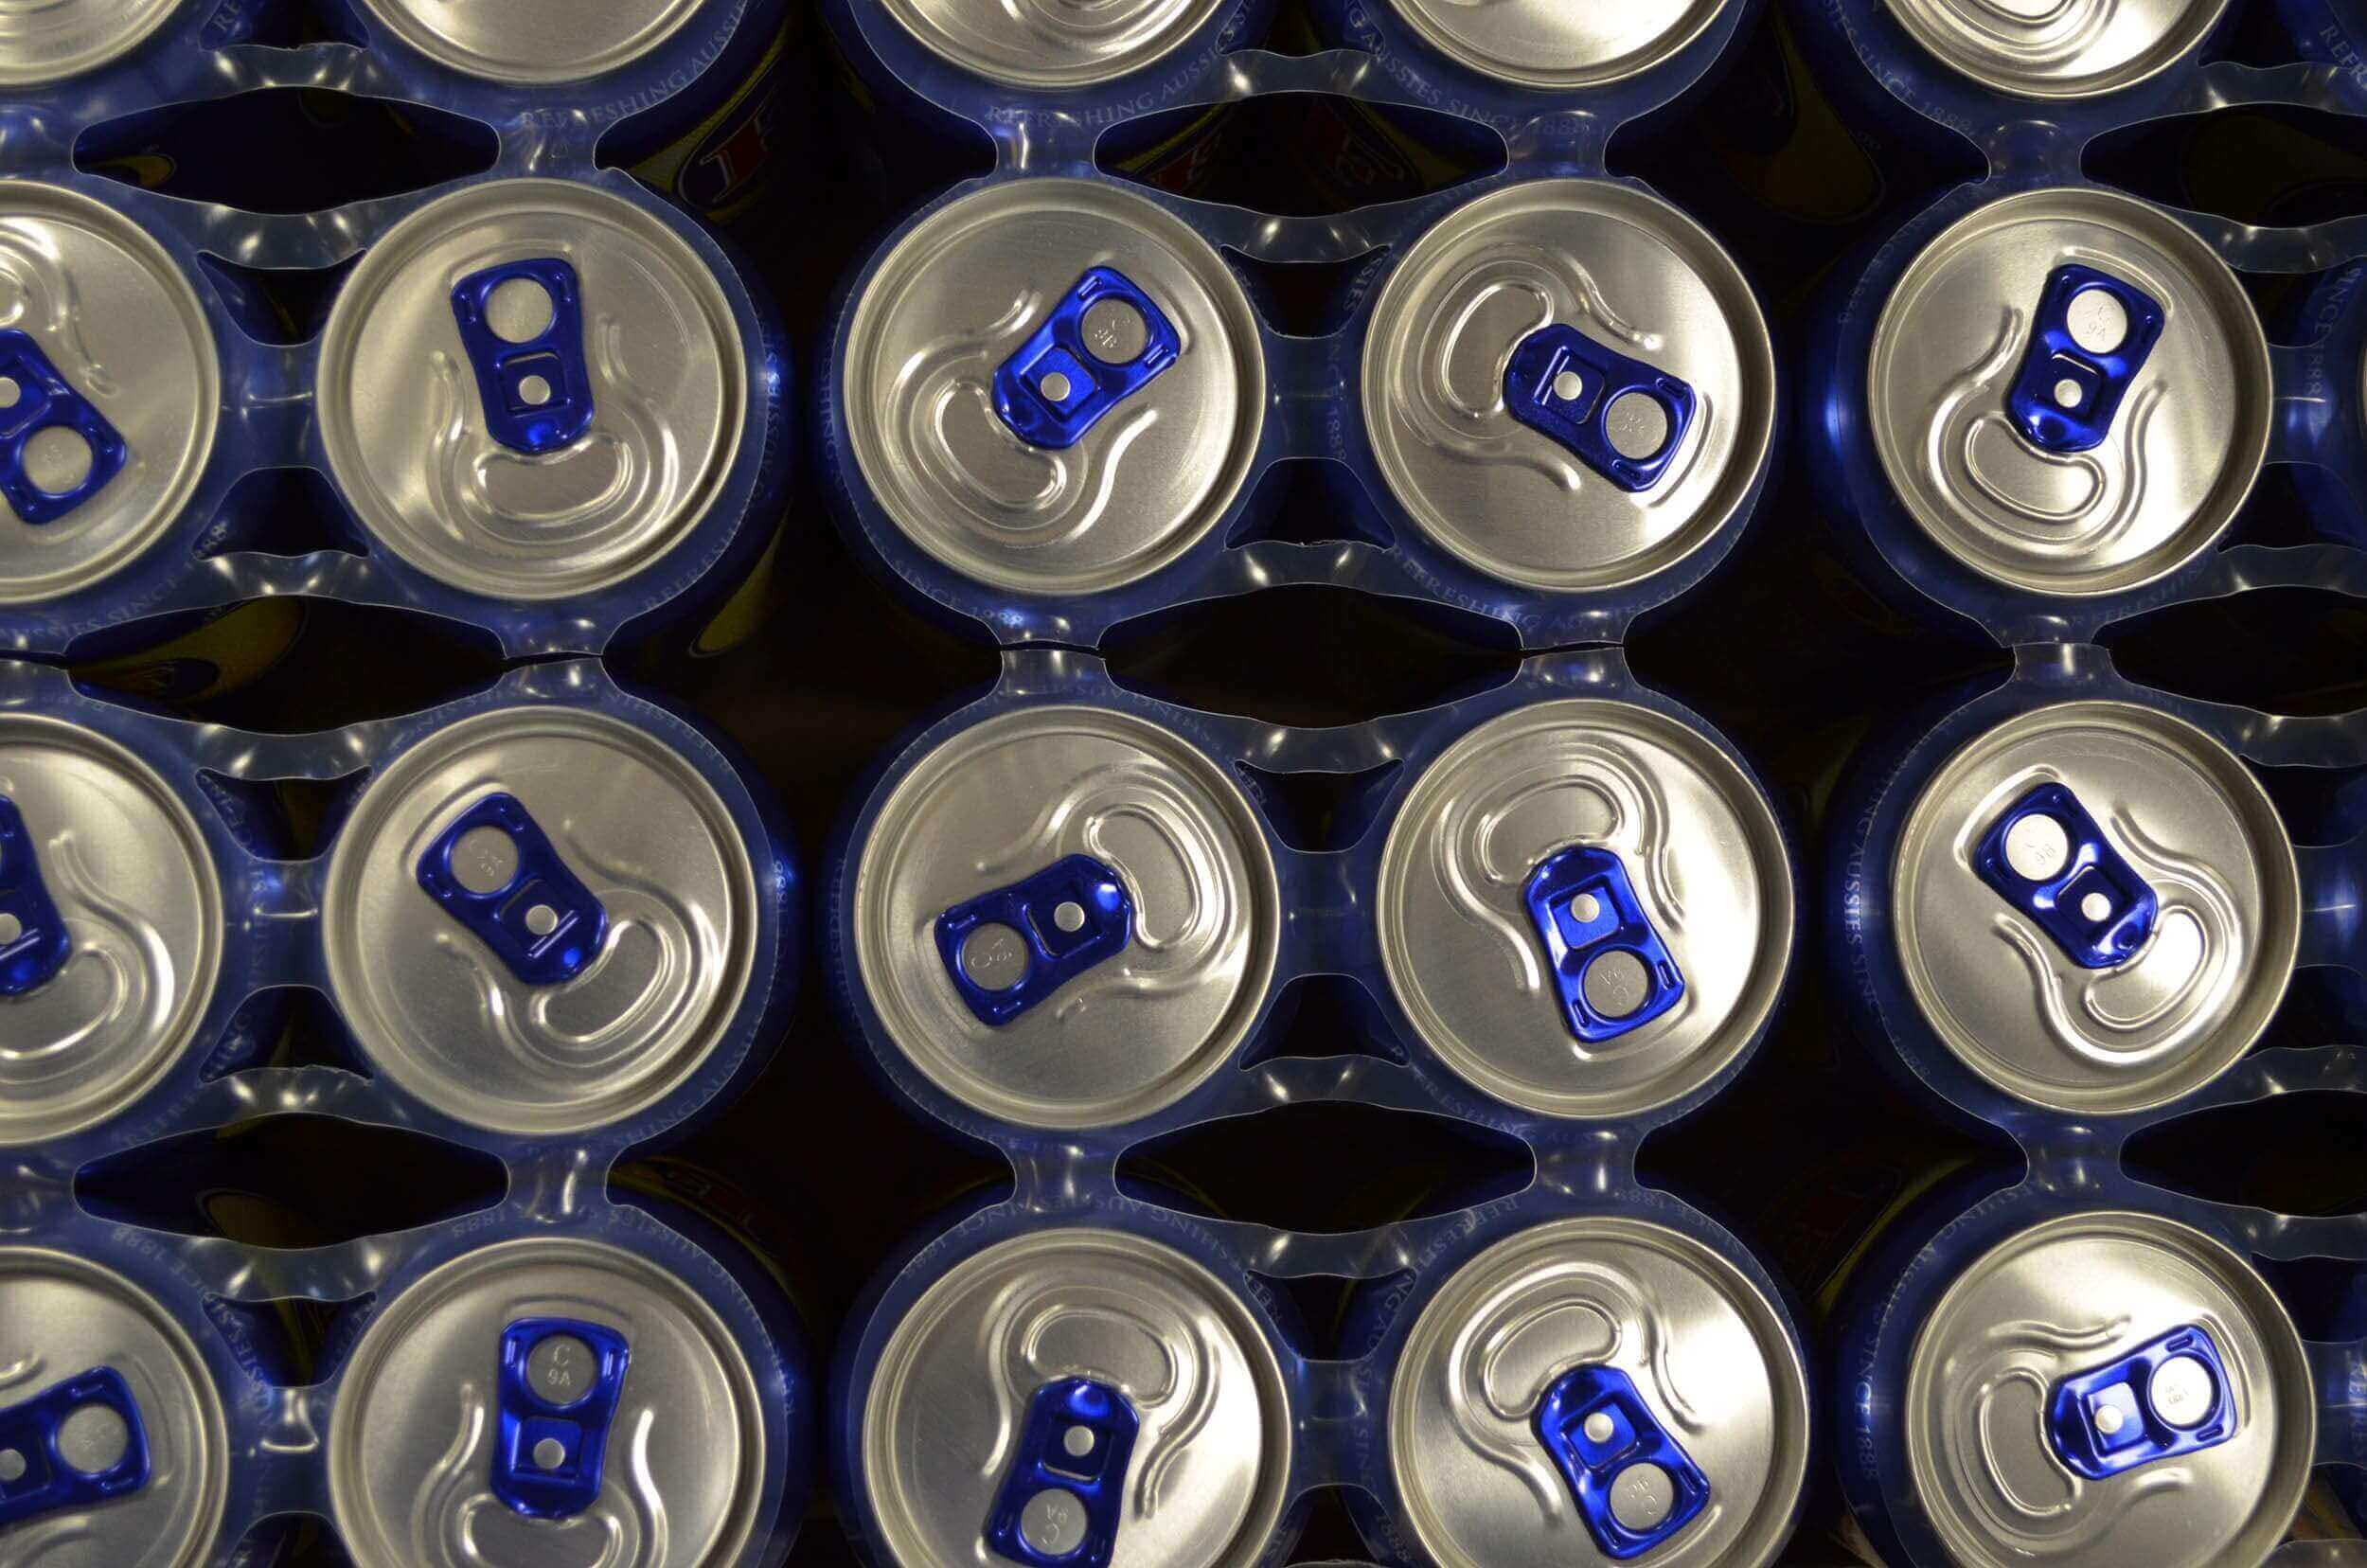 Blue soda cans with blue tabs from a top down view